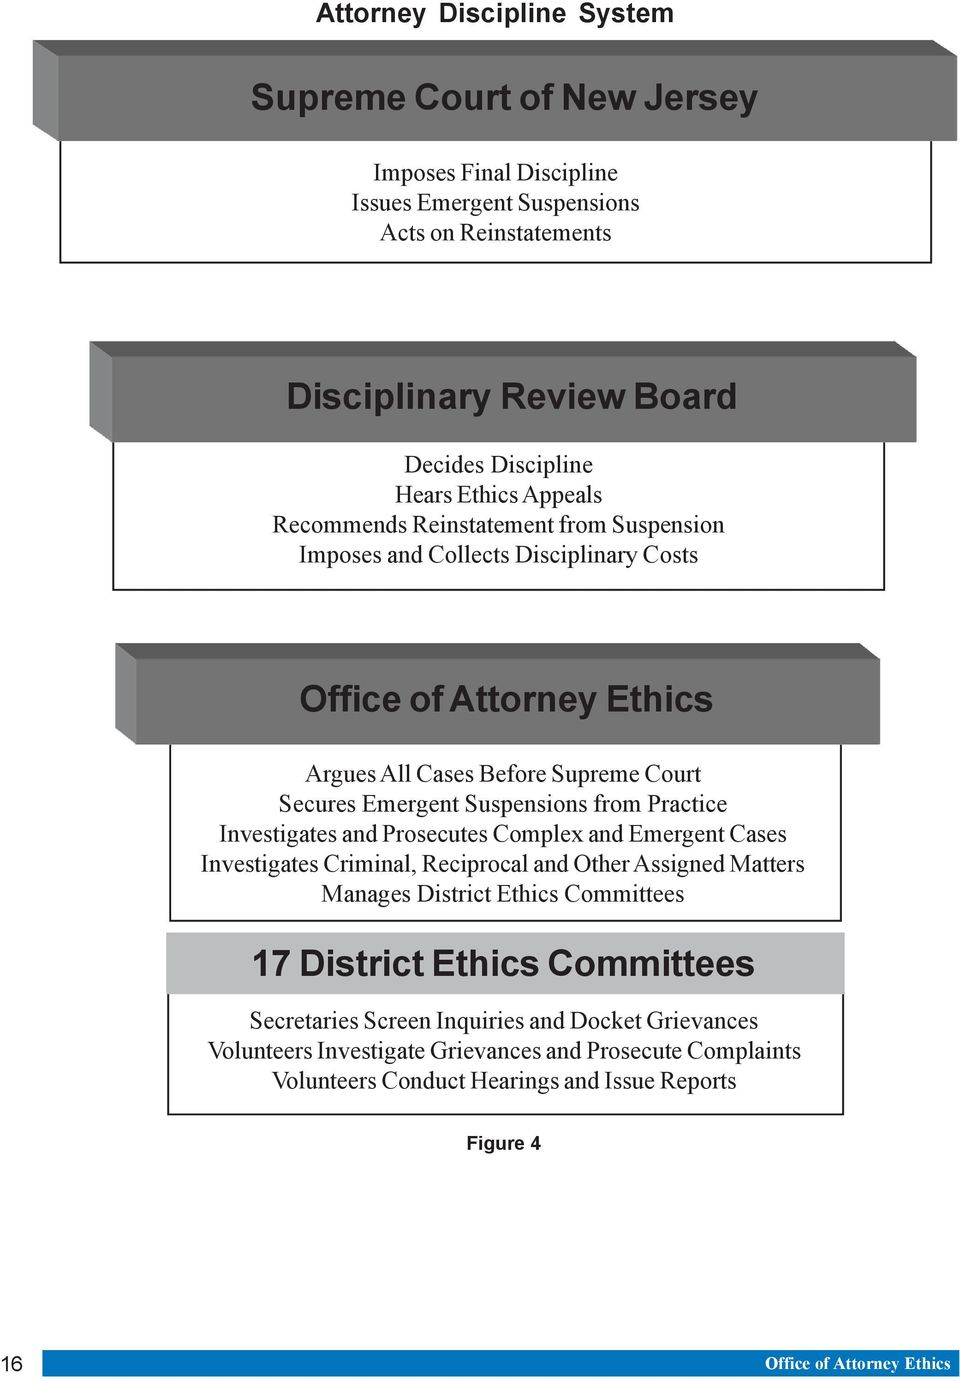 Practice Investigates and Prosecutes Complex and Emergent Cases Investigates Criminal, Reciprocal and Other Assigned Matters Manages District Ethics Committees 17 District Ethics Committees